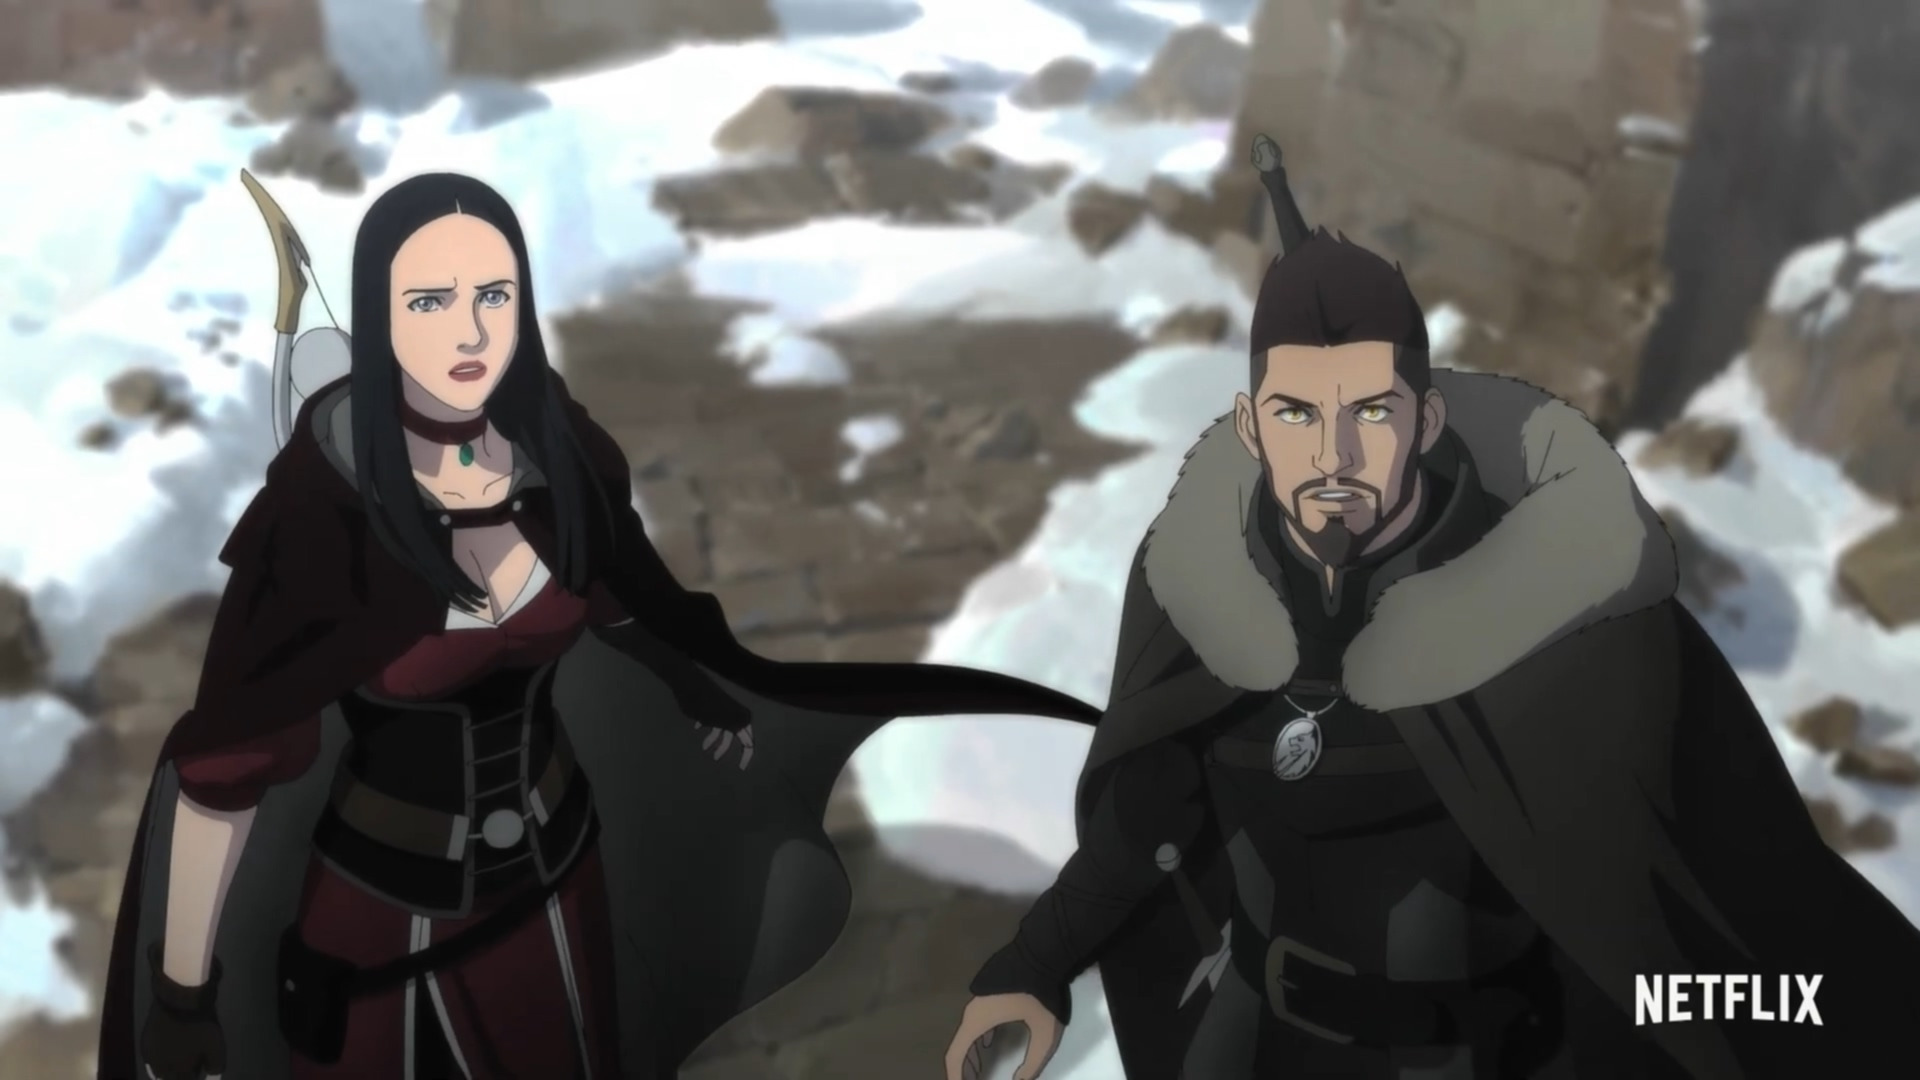 Trailer, Streaming, Netflix, Serie, The Witcher, Animationsserie, Nightmare of the Wolf, The Witcher: Nightmare of the Wolf